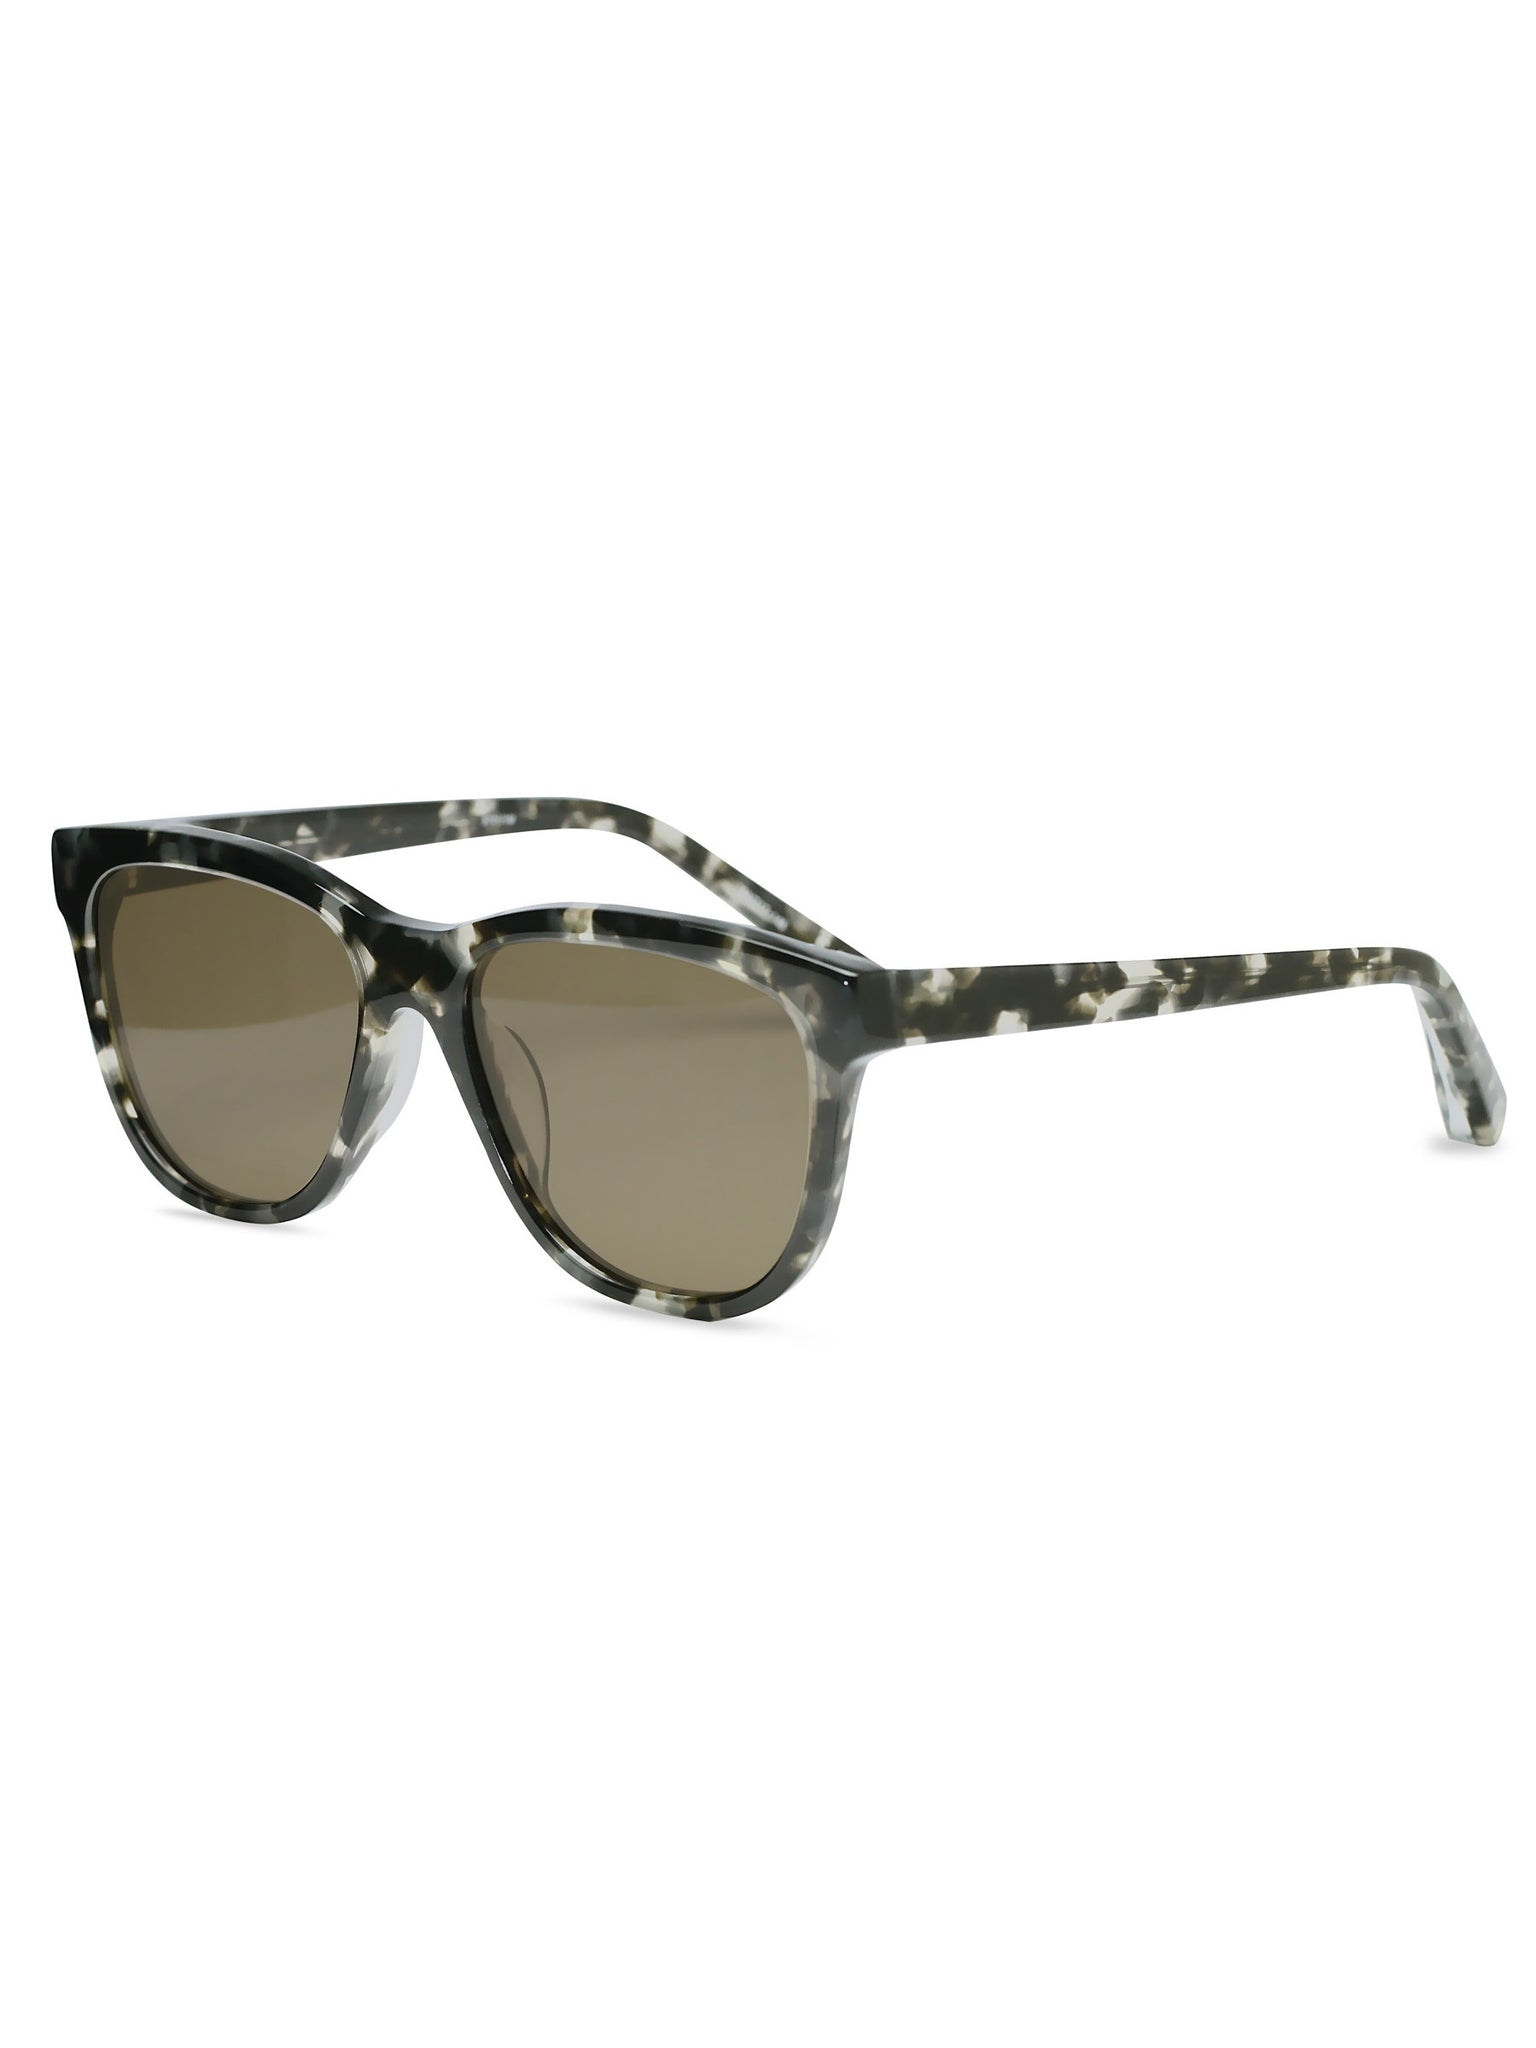 Elizabeth and James Sullivan Sunglasses | TILDEN